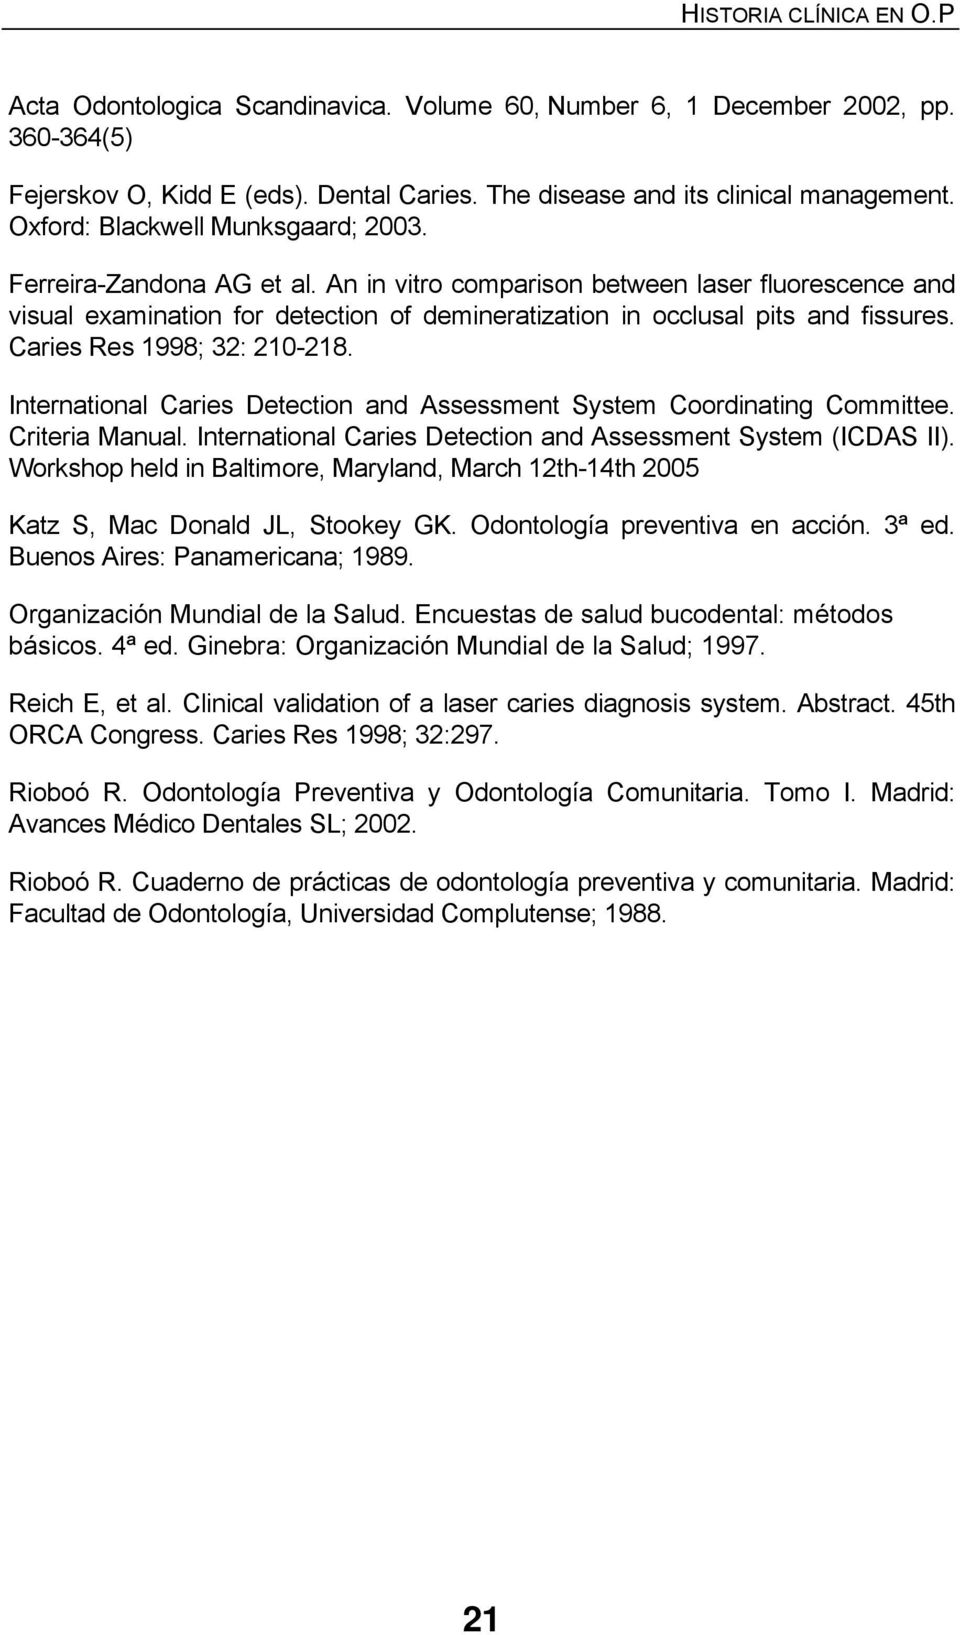 Caries Res 1998; 32: 210-218. International Caries Detection and Assessment System Coordinating Committee. Criteria Manual. International Caries Detection and Assessment System (ICDAS II).